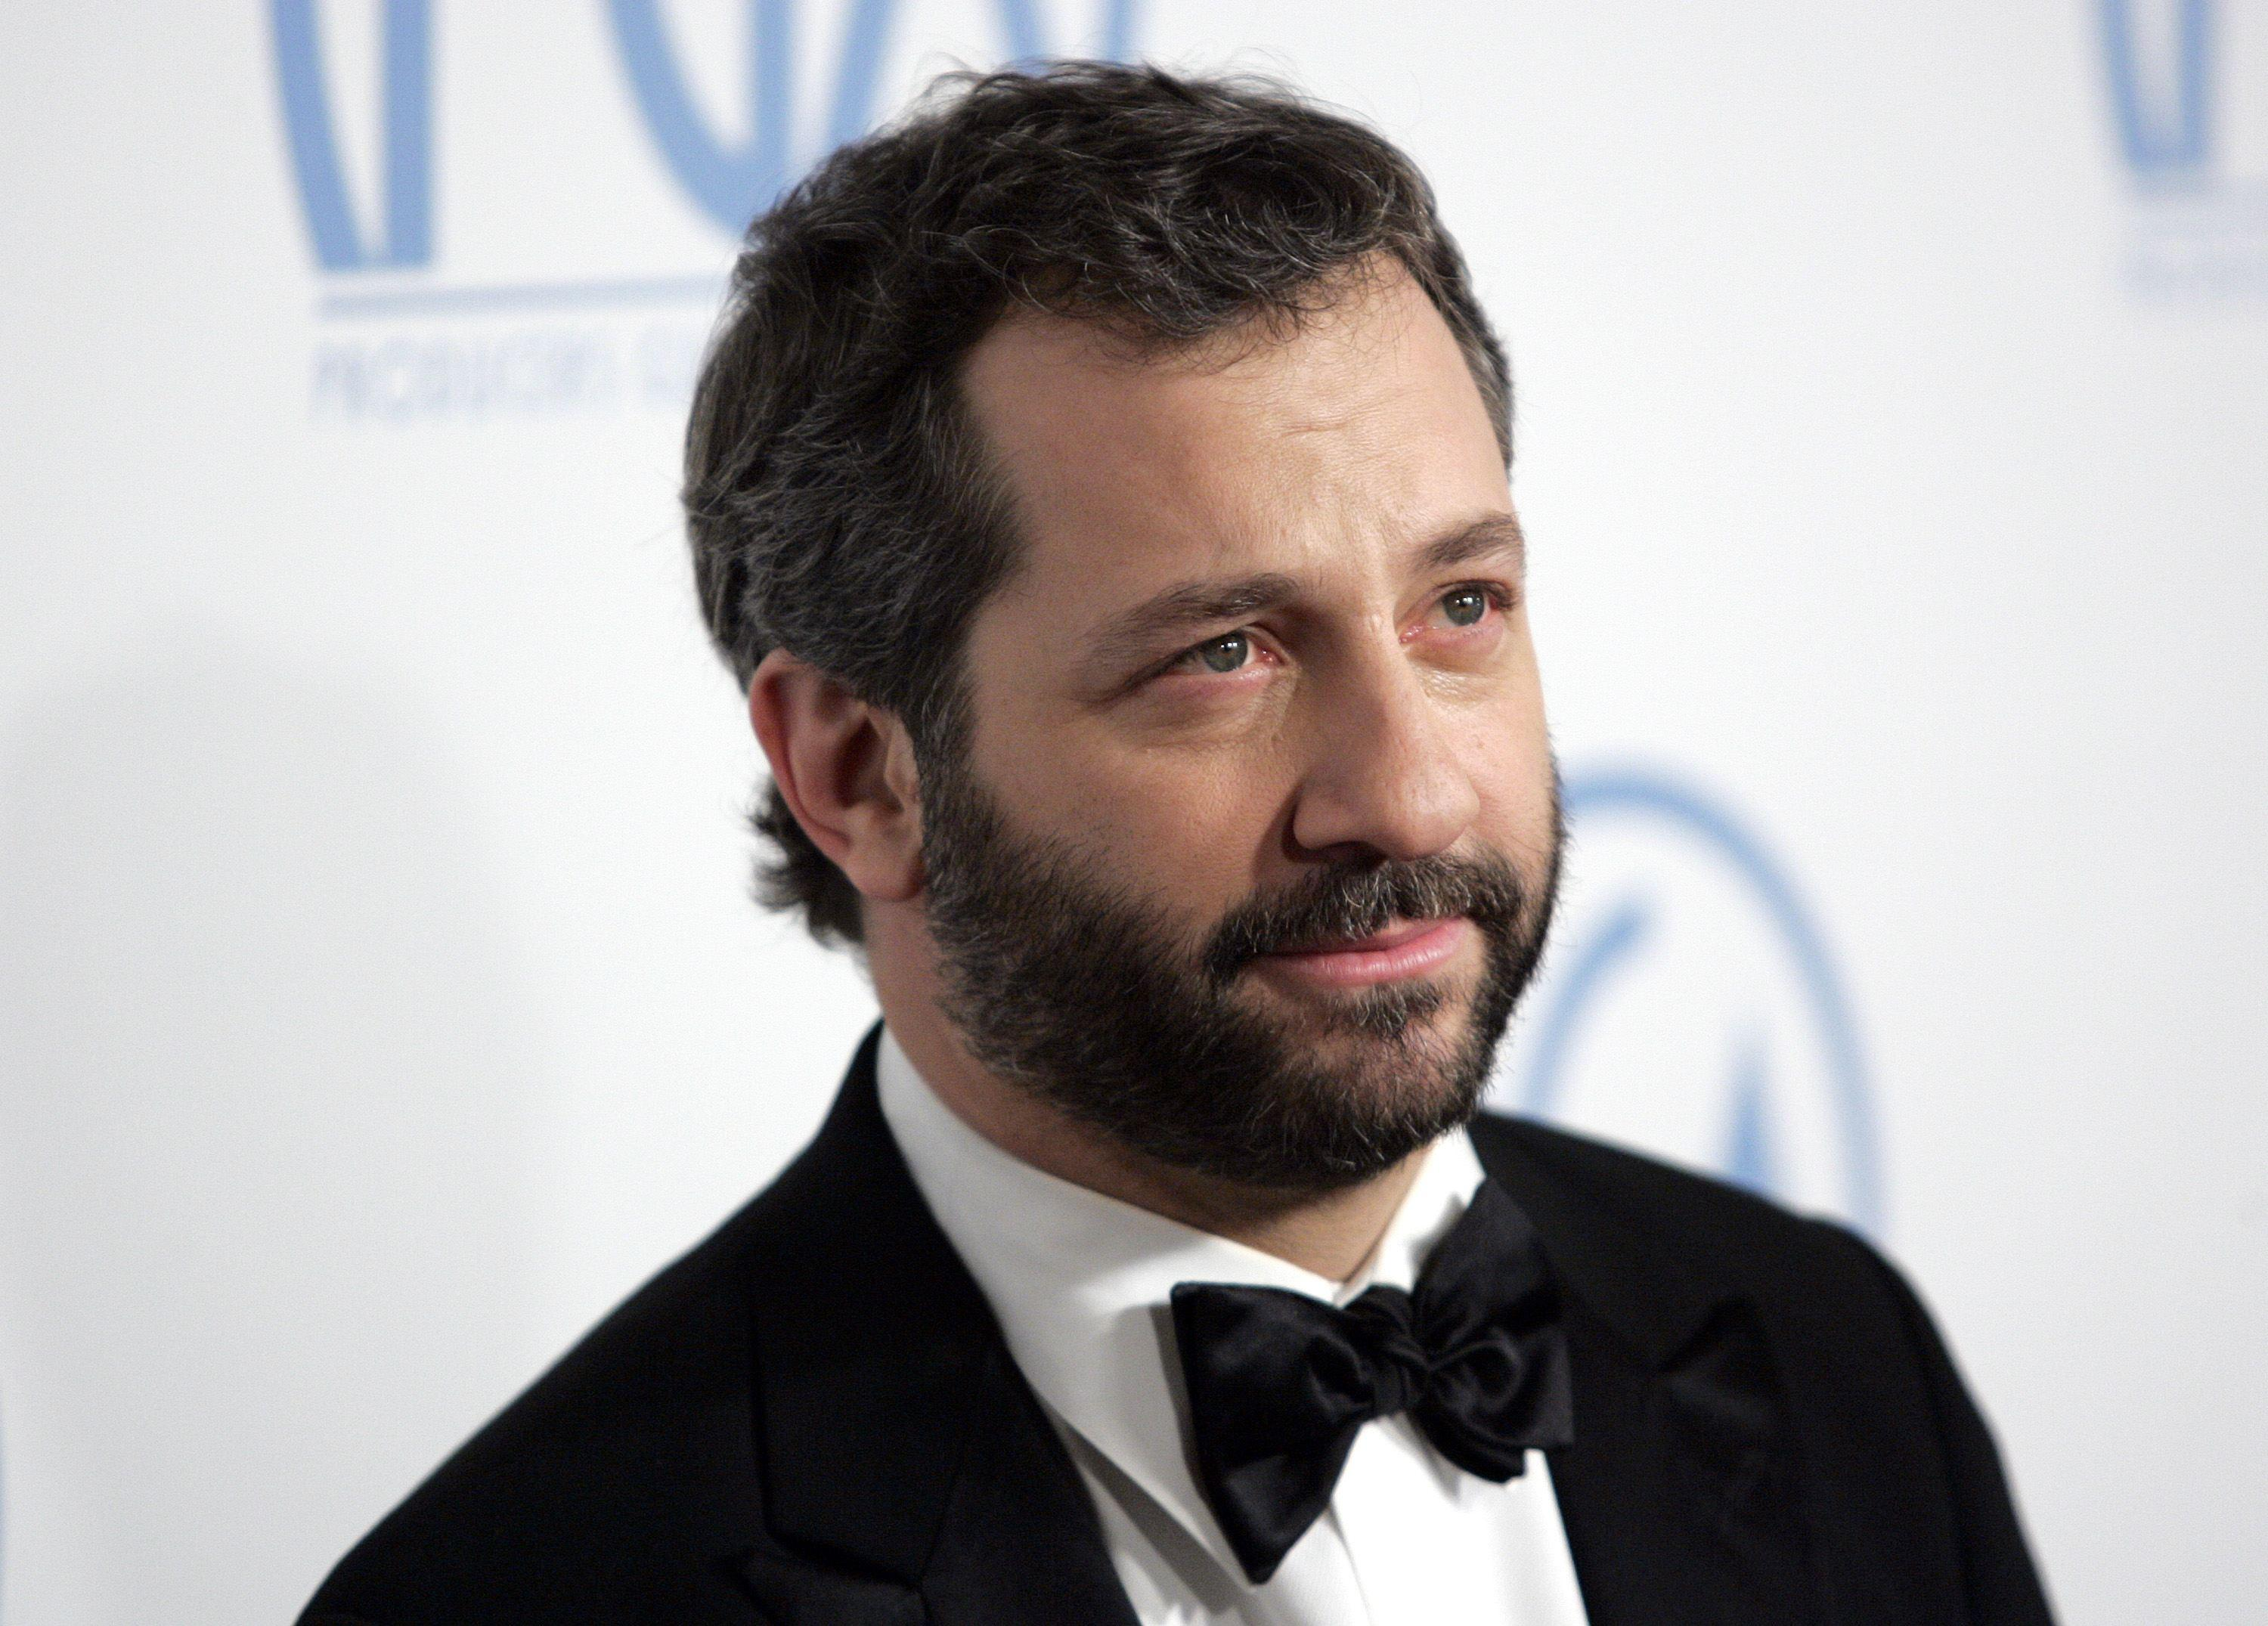 Producer Judd Apatow arrives at the Producers Guild Awards at the Beverly Hilton Hotel in Beverly Hills, California.